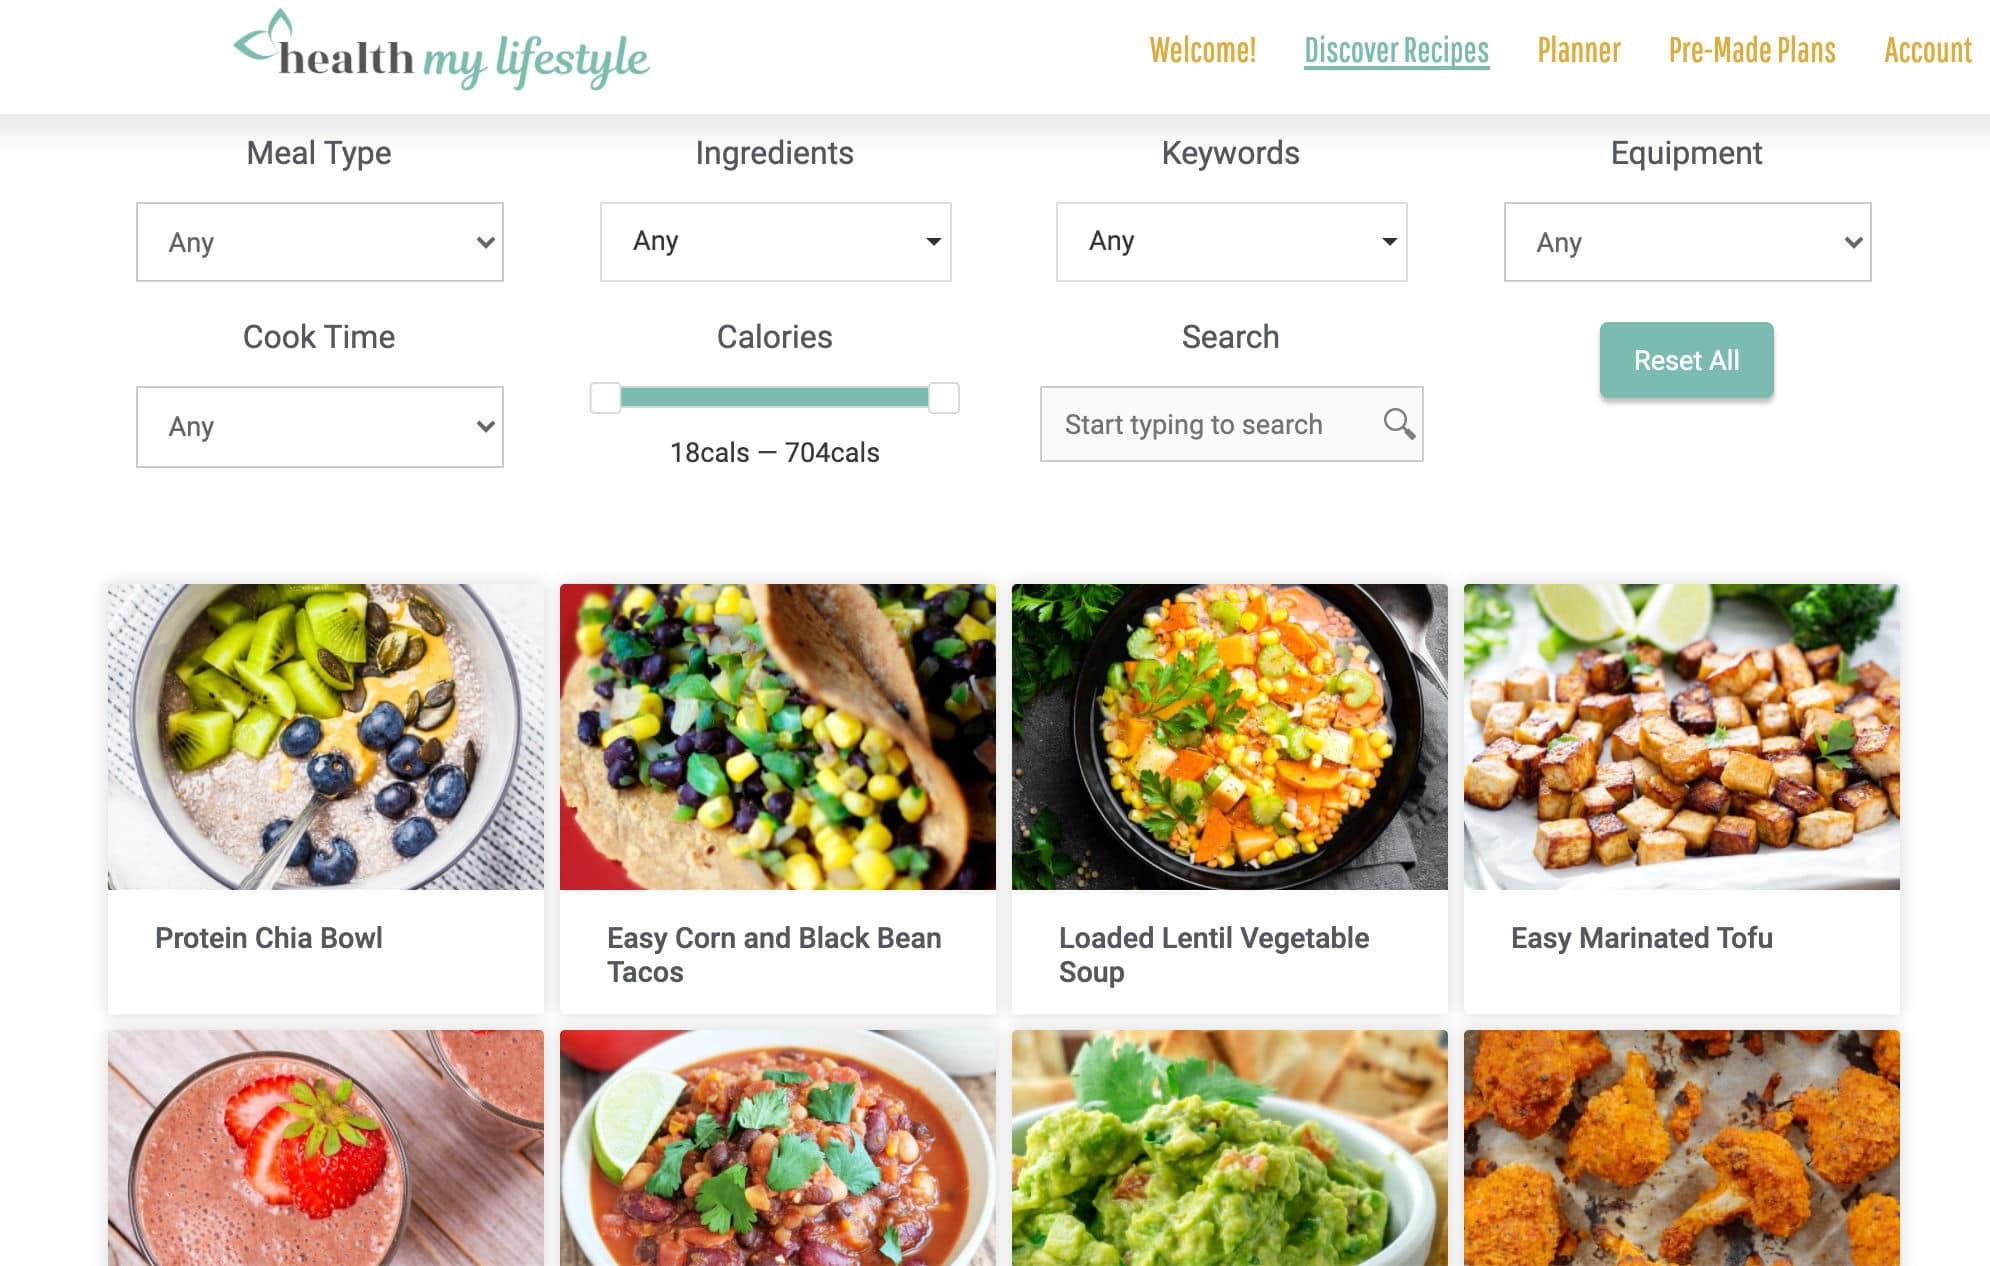 recipe database with search function for meal type, ingredients, keywords, equipment, cook time, calories per serving